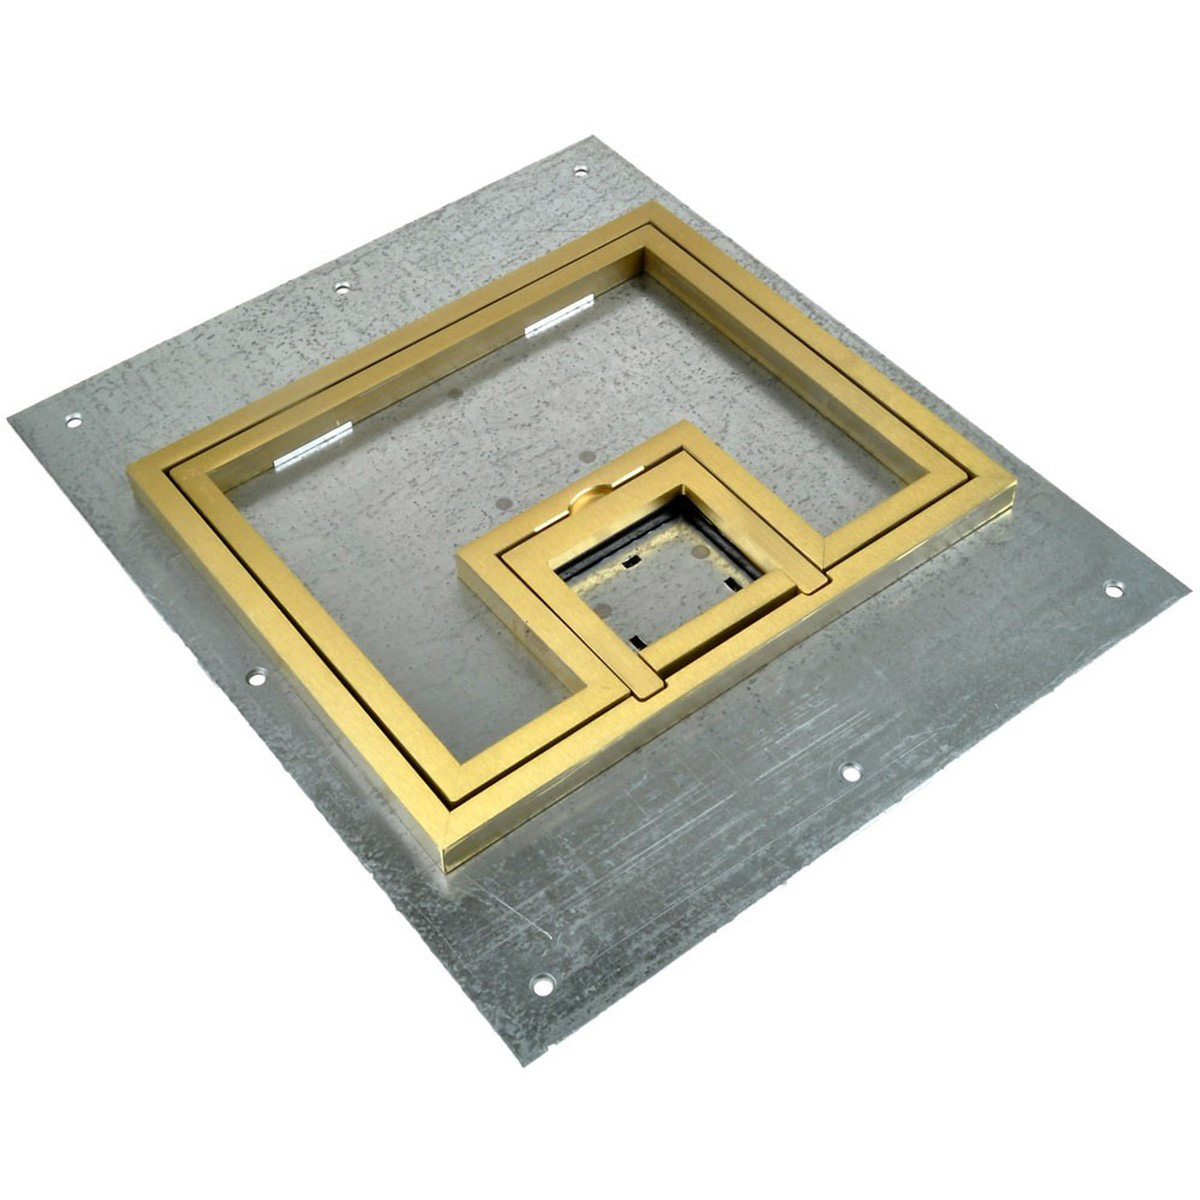 Fsr Fl 500p B C Fl 500p Cover With 1 2 Inch Brass Carpet